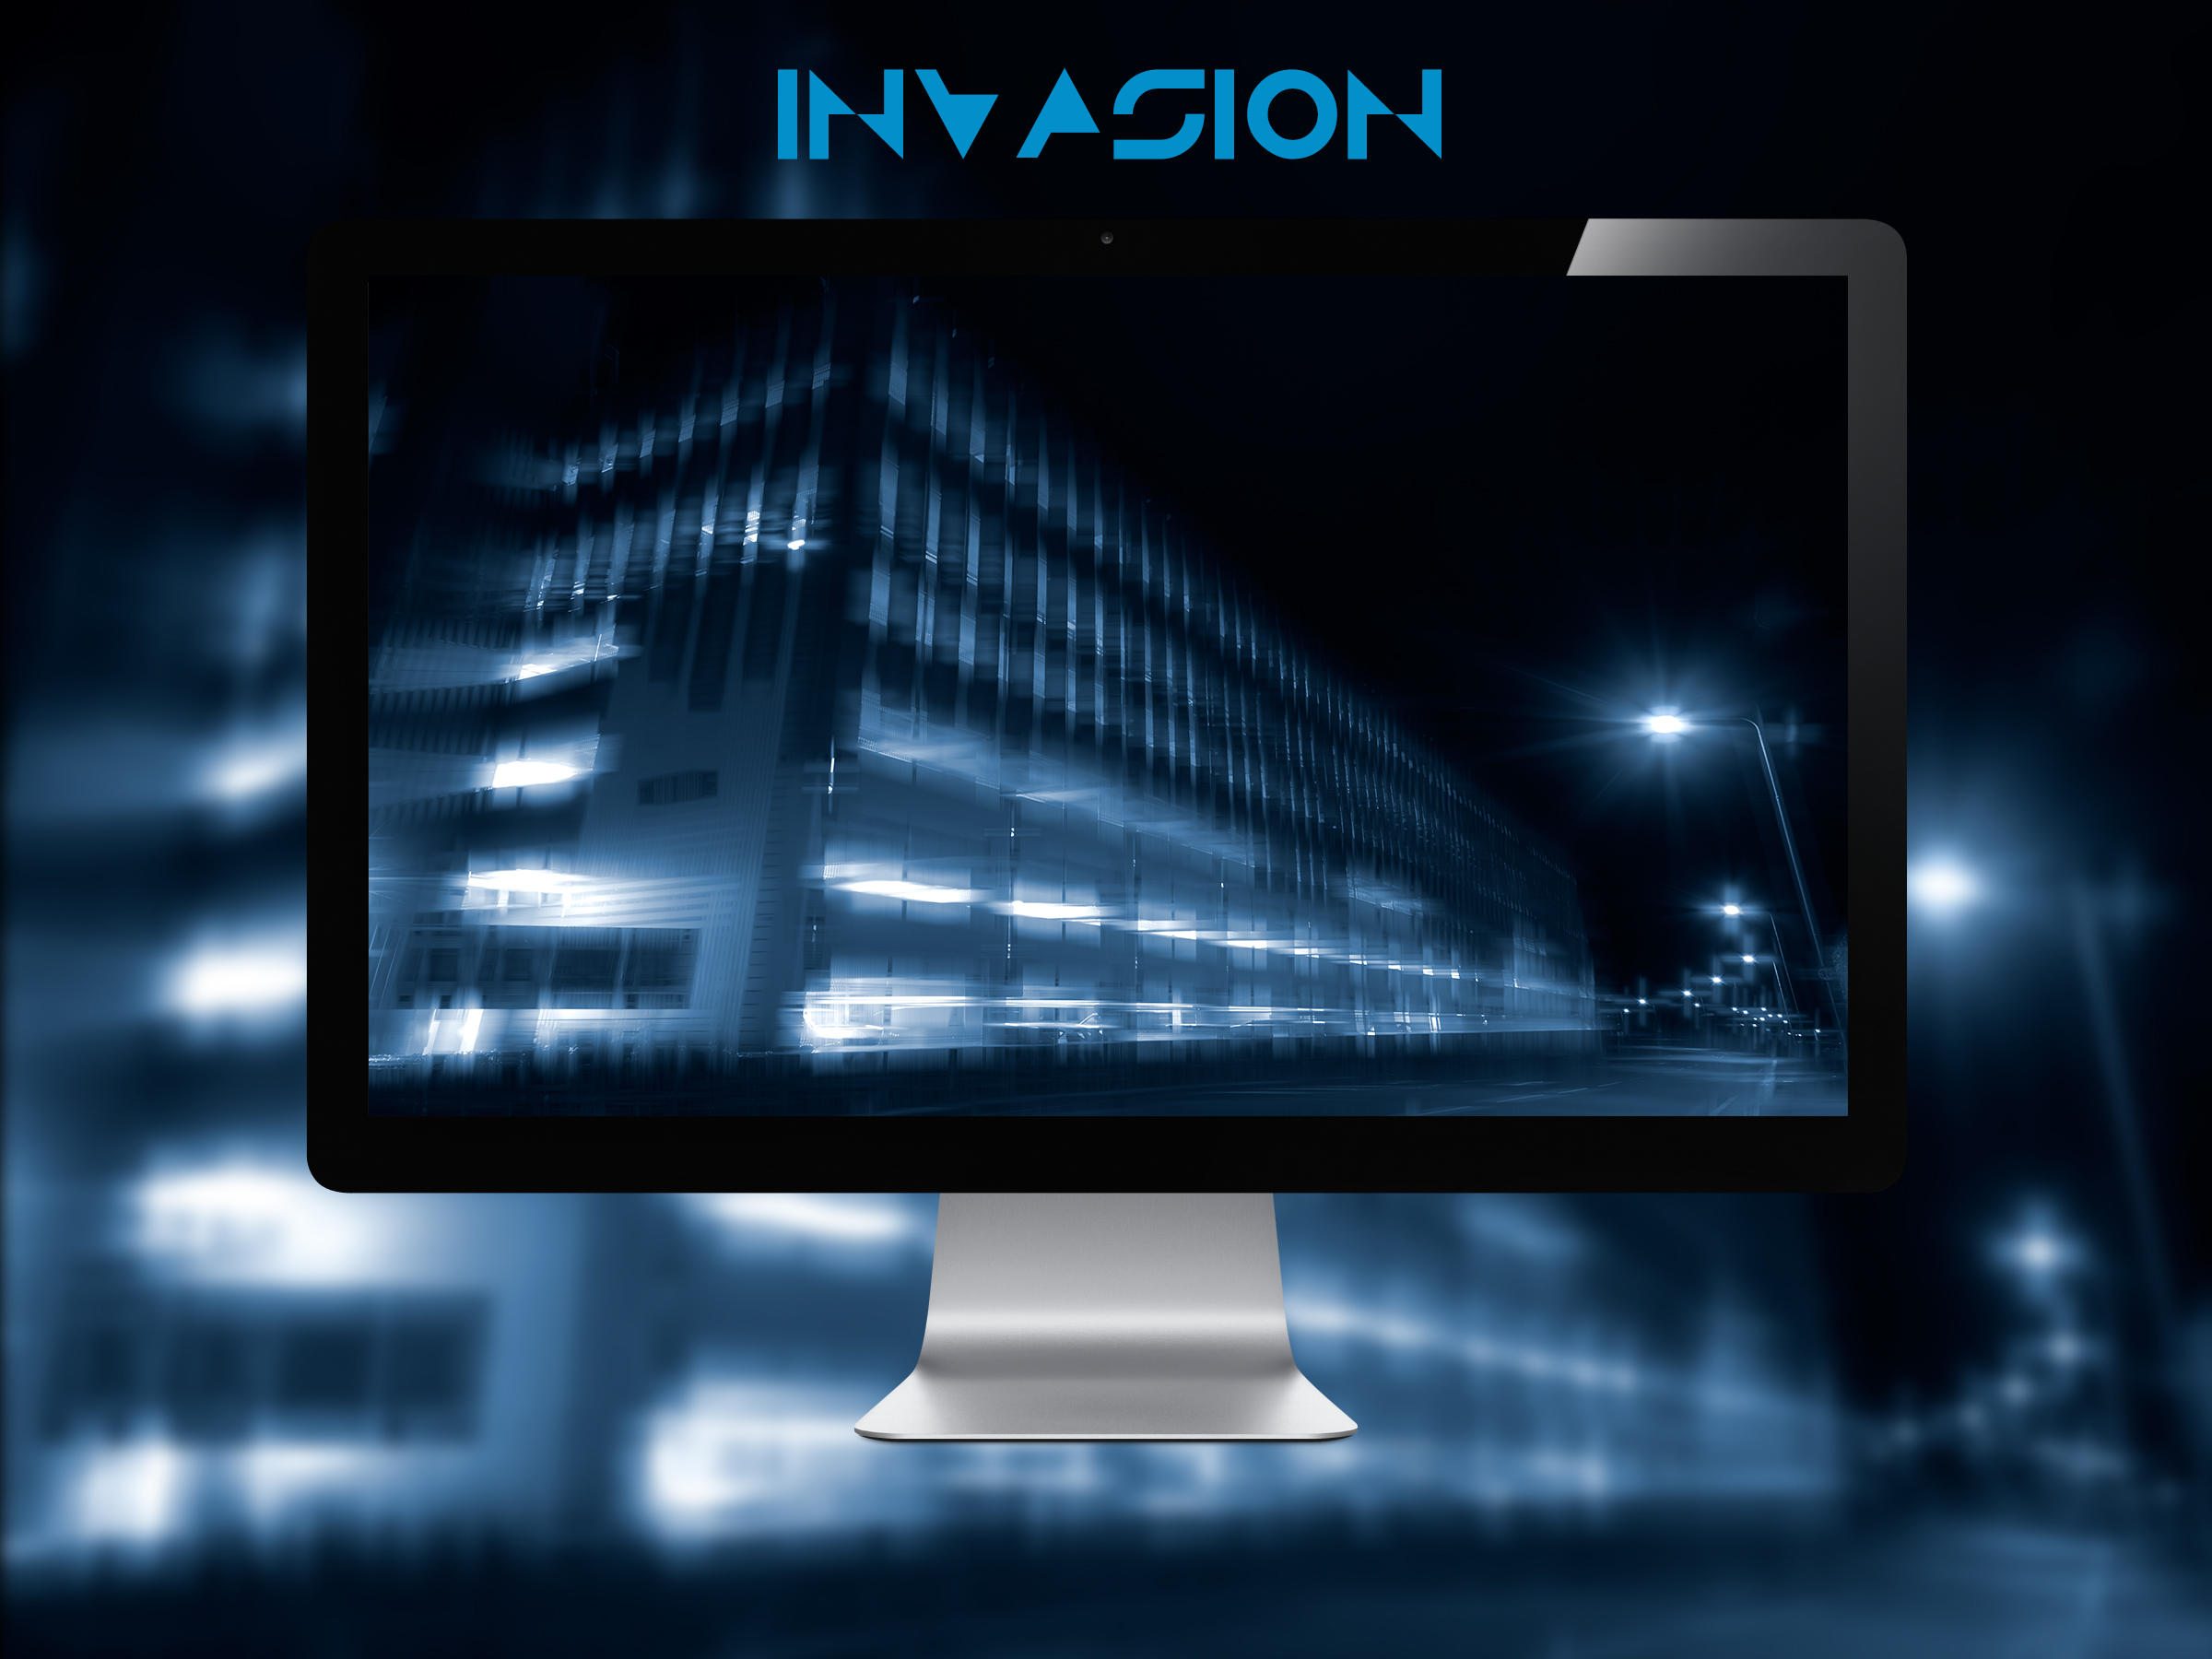 Invasion Wallpaper Pack by AntonioGouveia